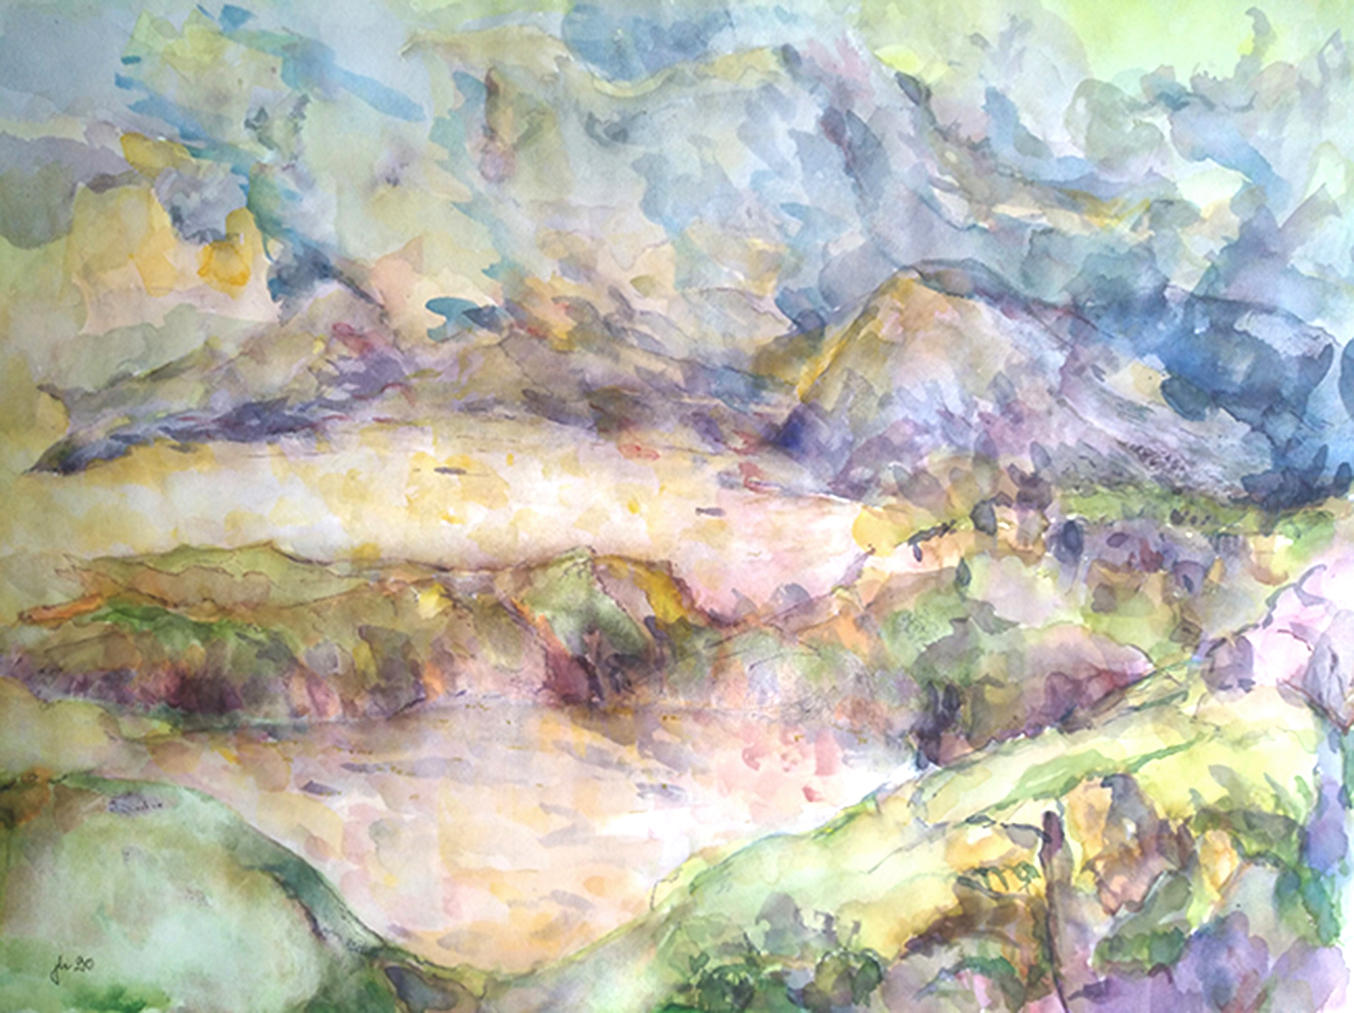 Die Bucht, 1990. Watercolor on paper. 62 x 46 cm, framed.